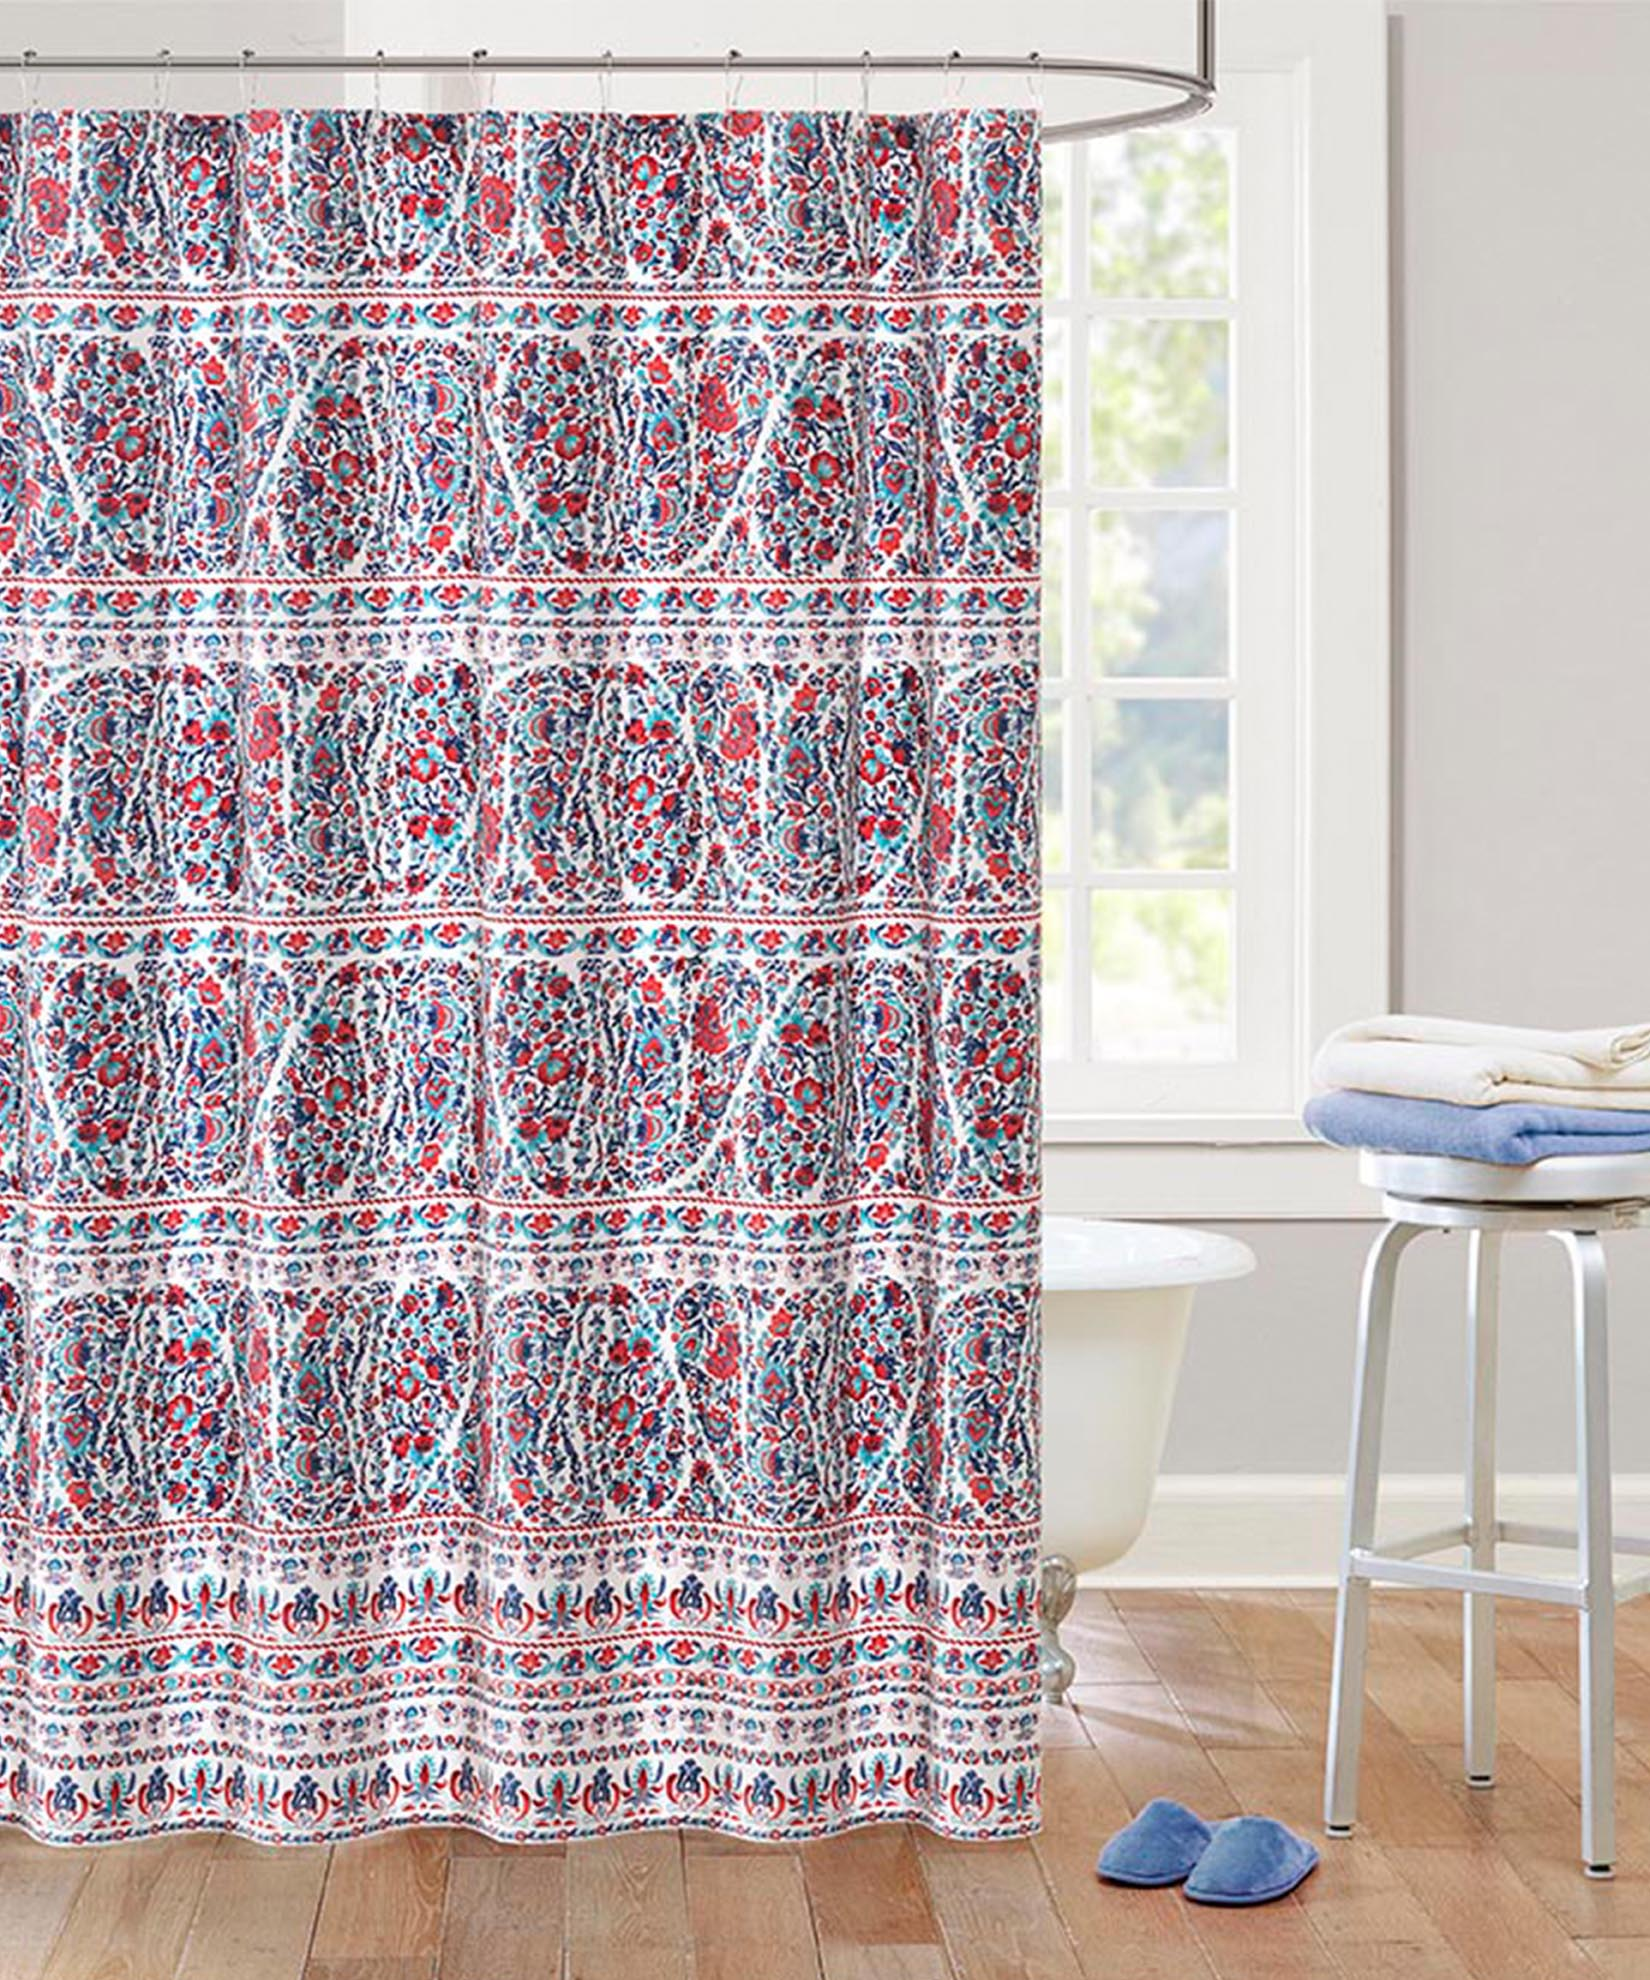 Red - Woodstock Shower Curtain